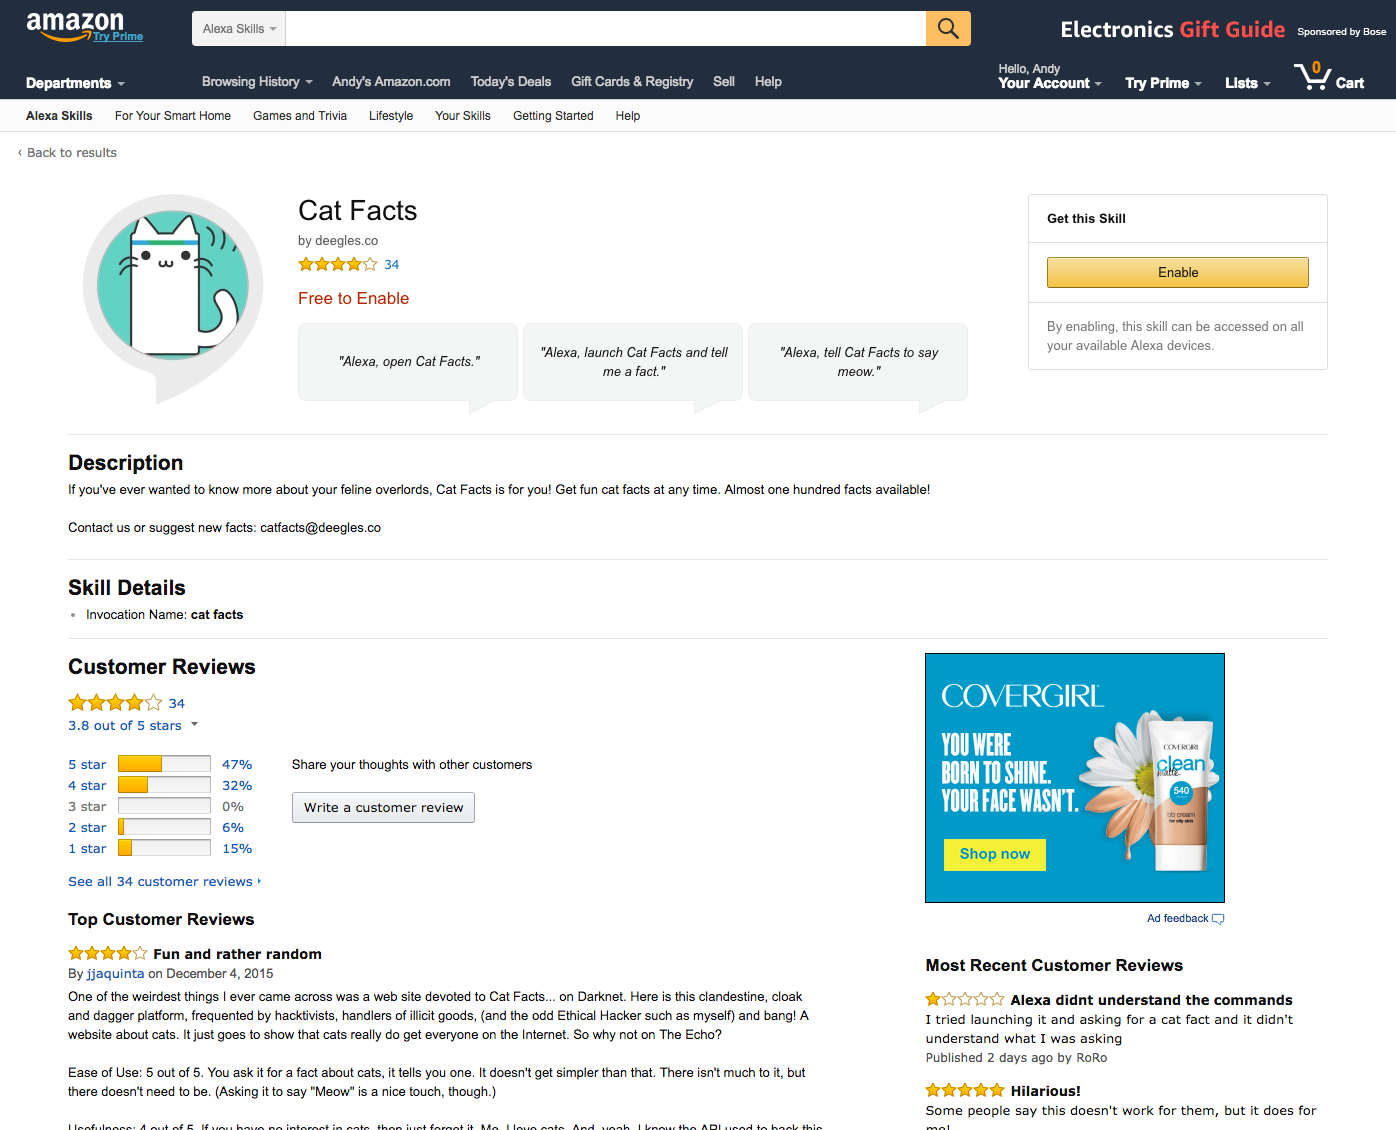 Introducing Detail Pages on Amazon com to Increase Discovery and Use